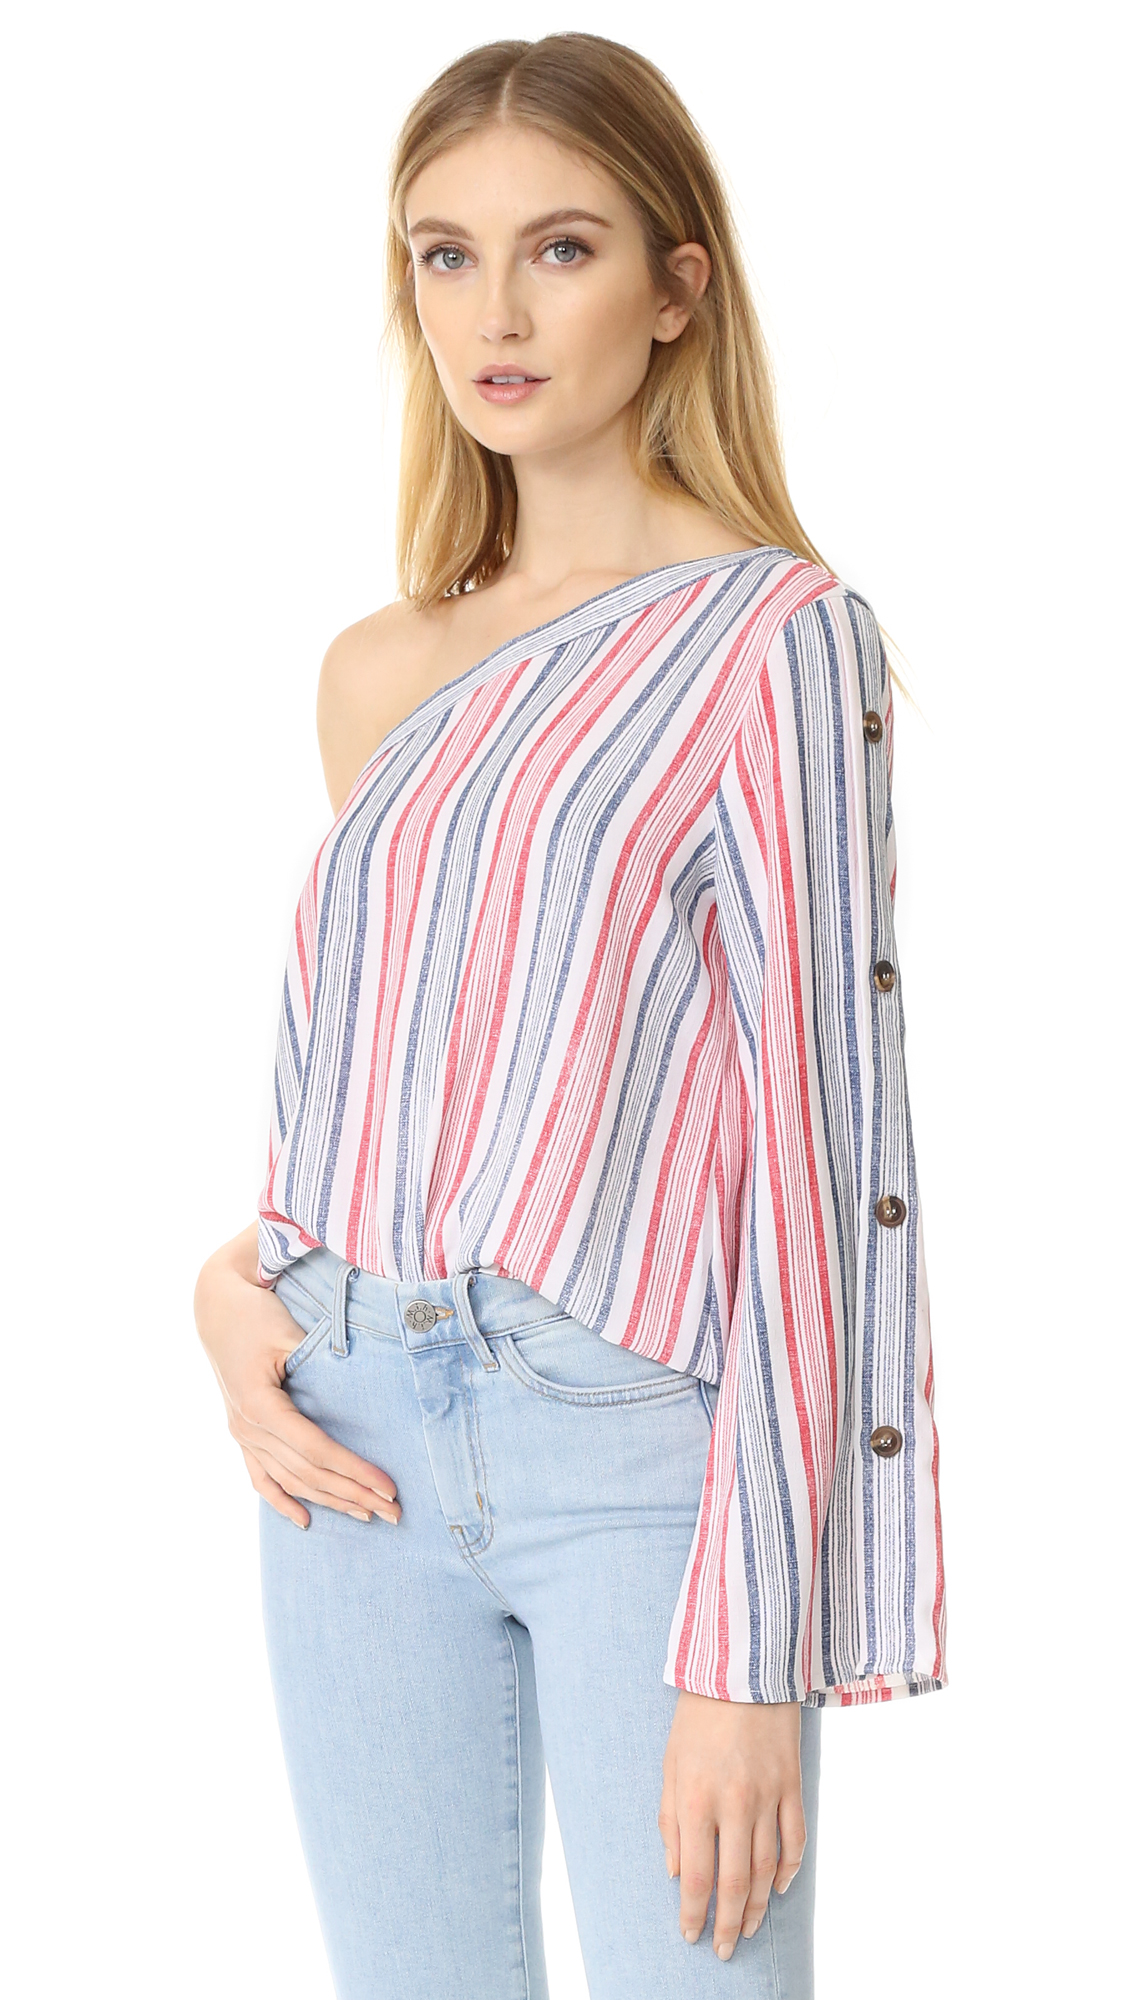 re: named One Shoulder Blouse - White/Red